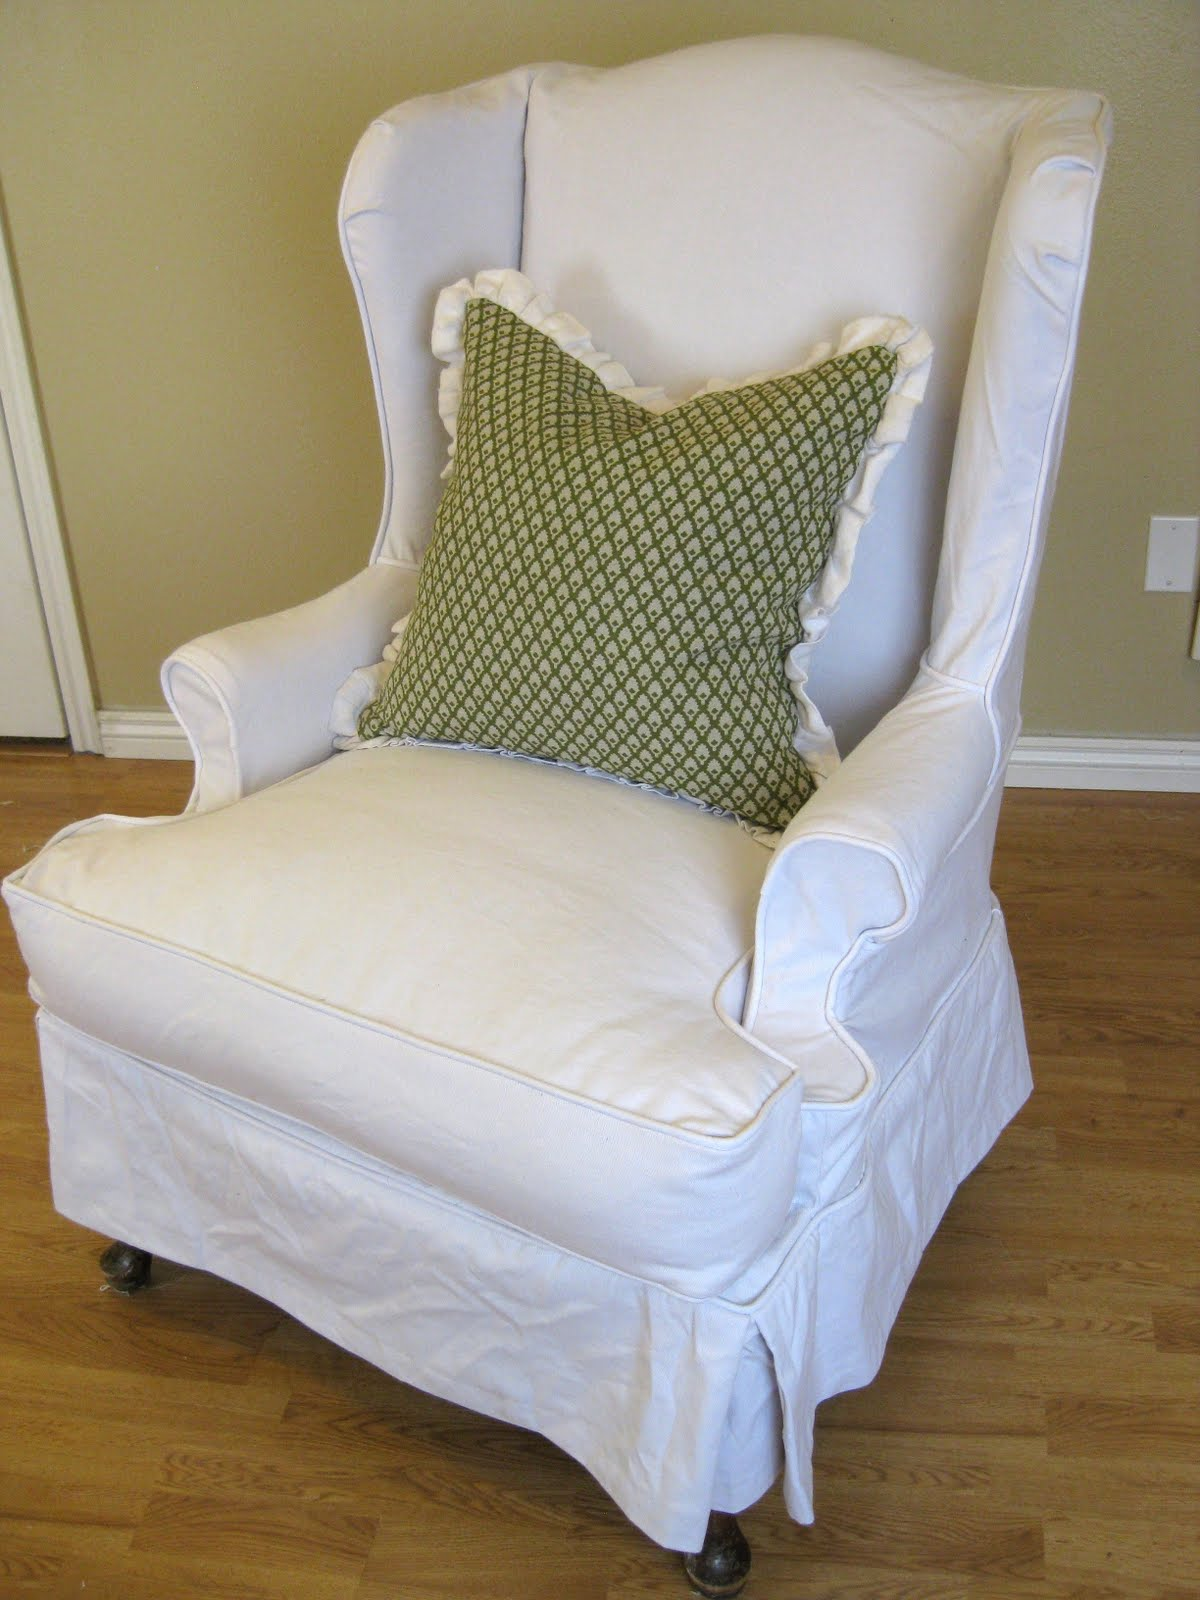 Get the Attractive Chairs with Slip Covers for Chairs